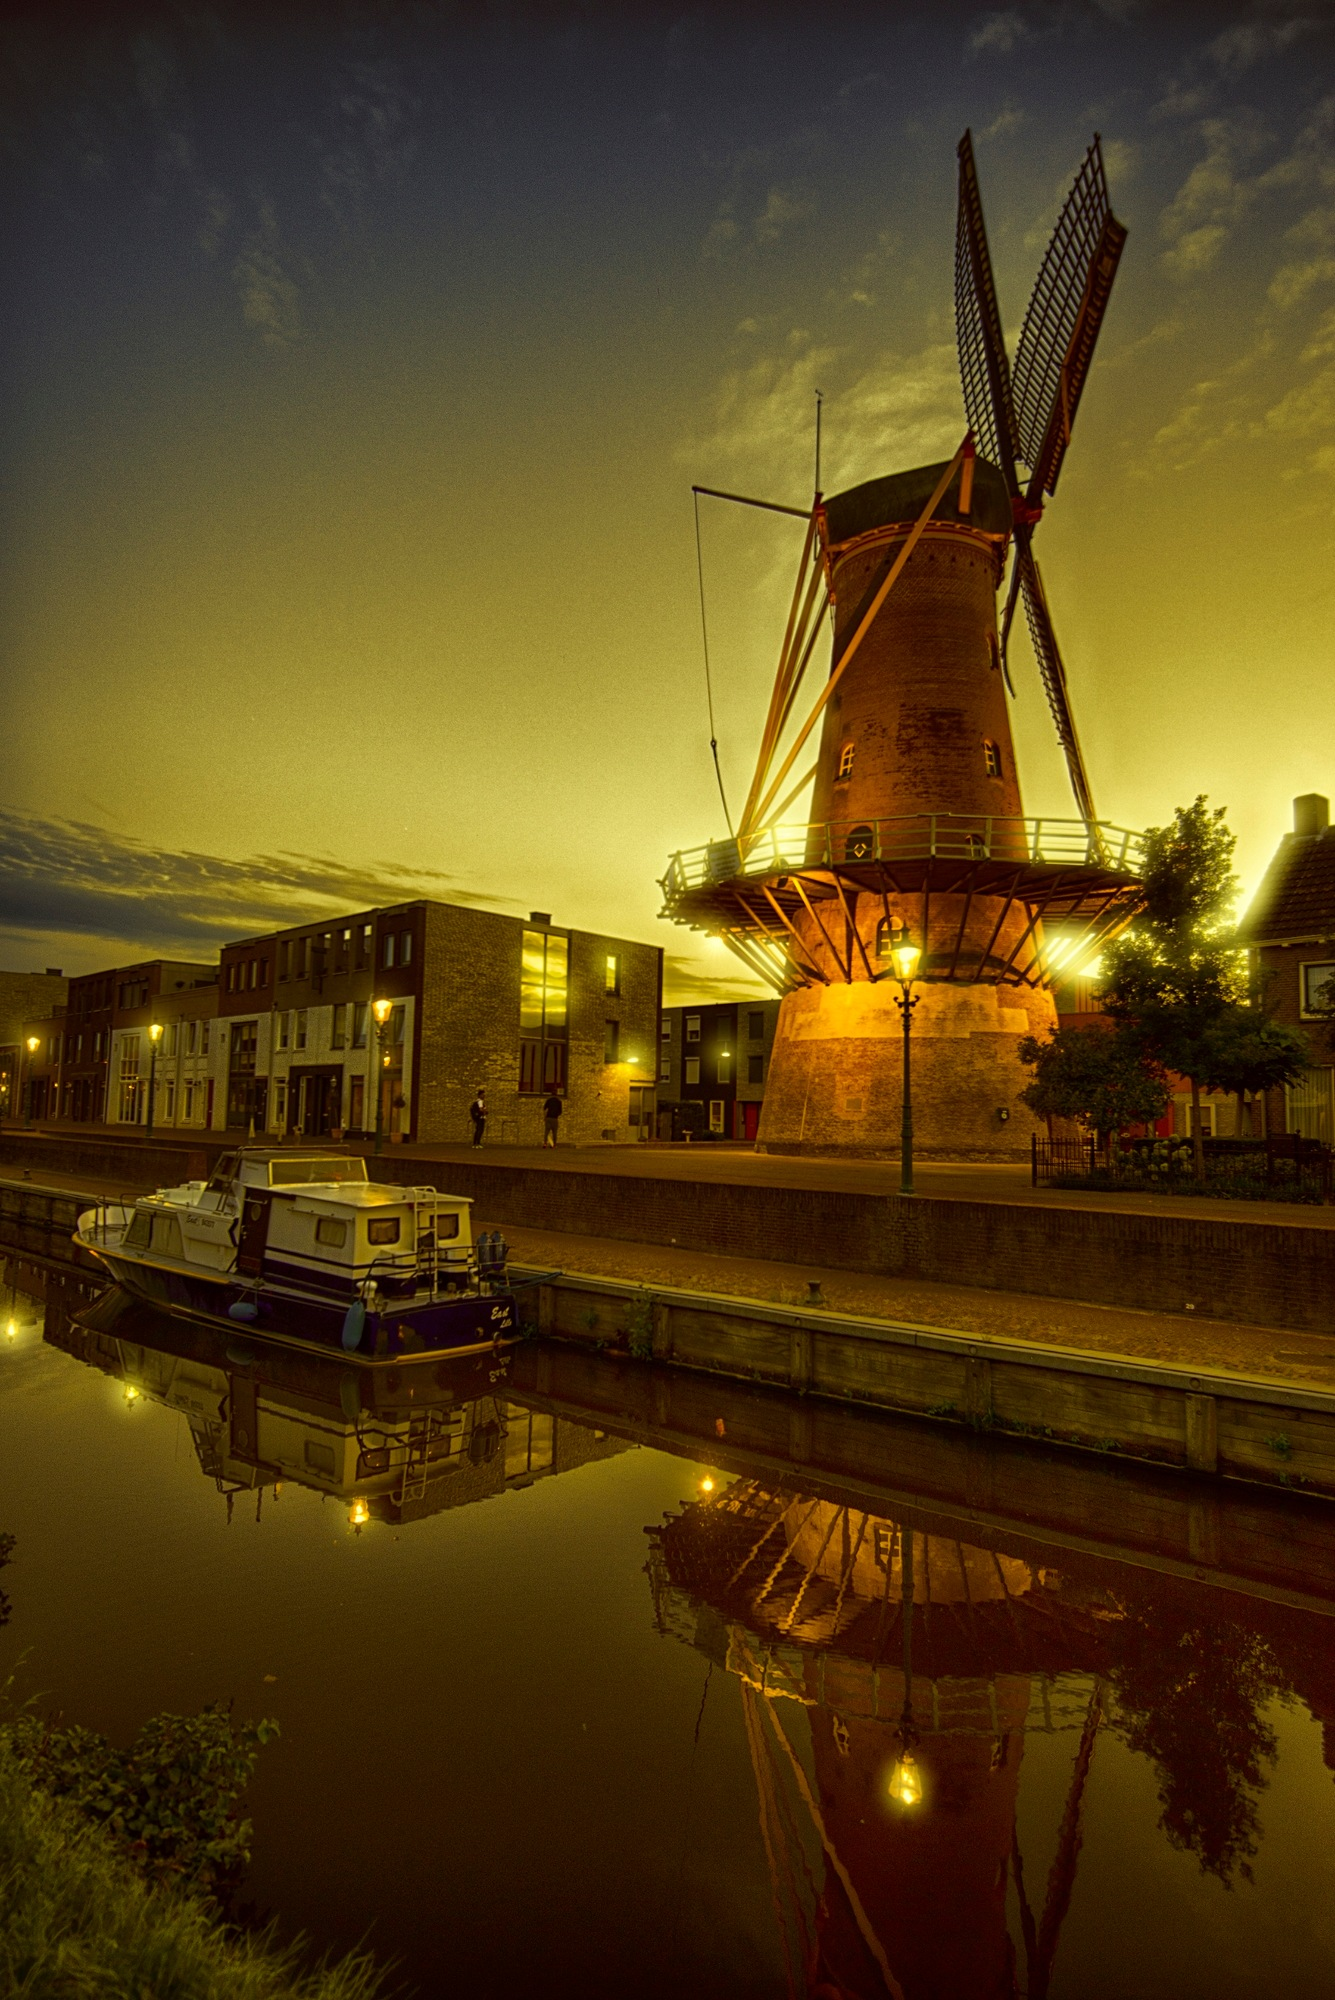 Windmill in the evening by egonzitter